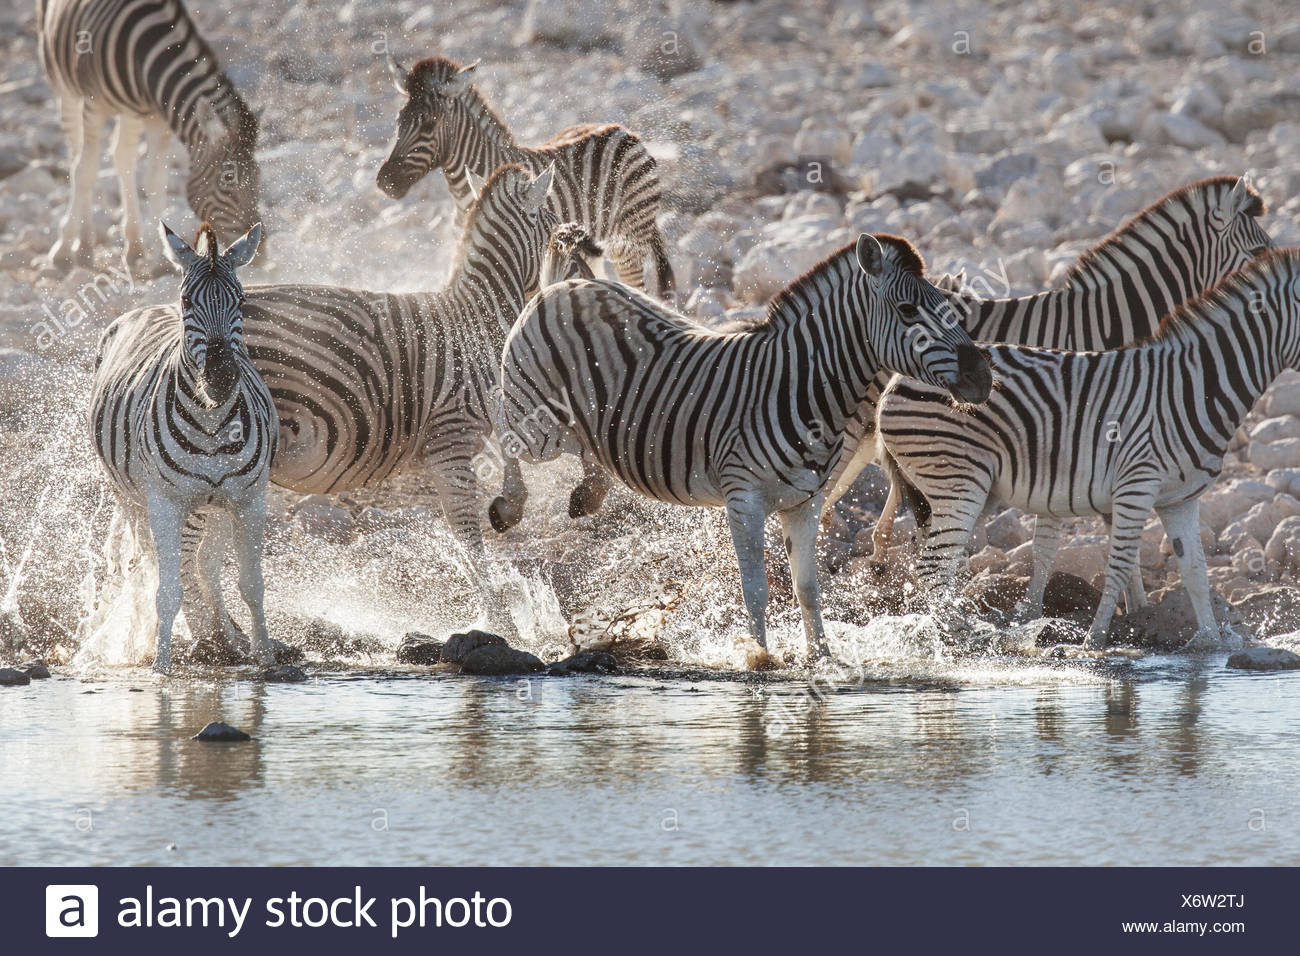 A zebra defends its place at the waterhole by bucking its hind legs. - Stock Image